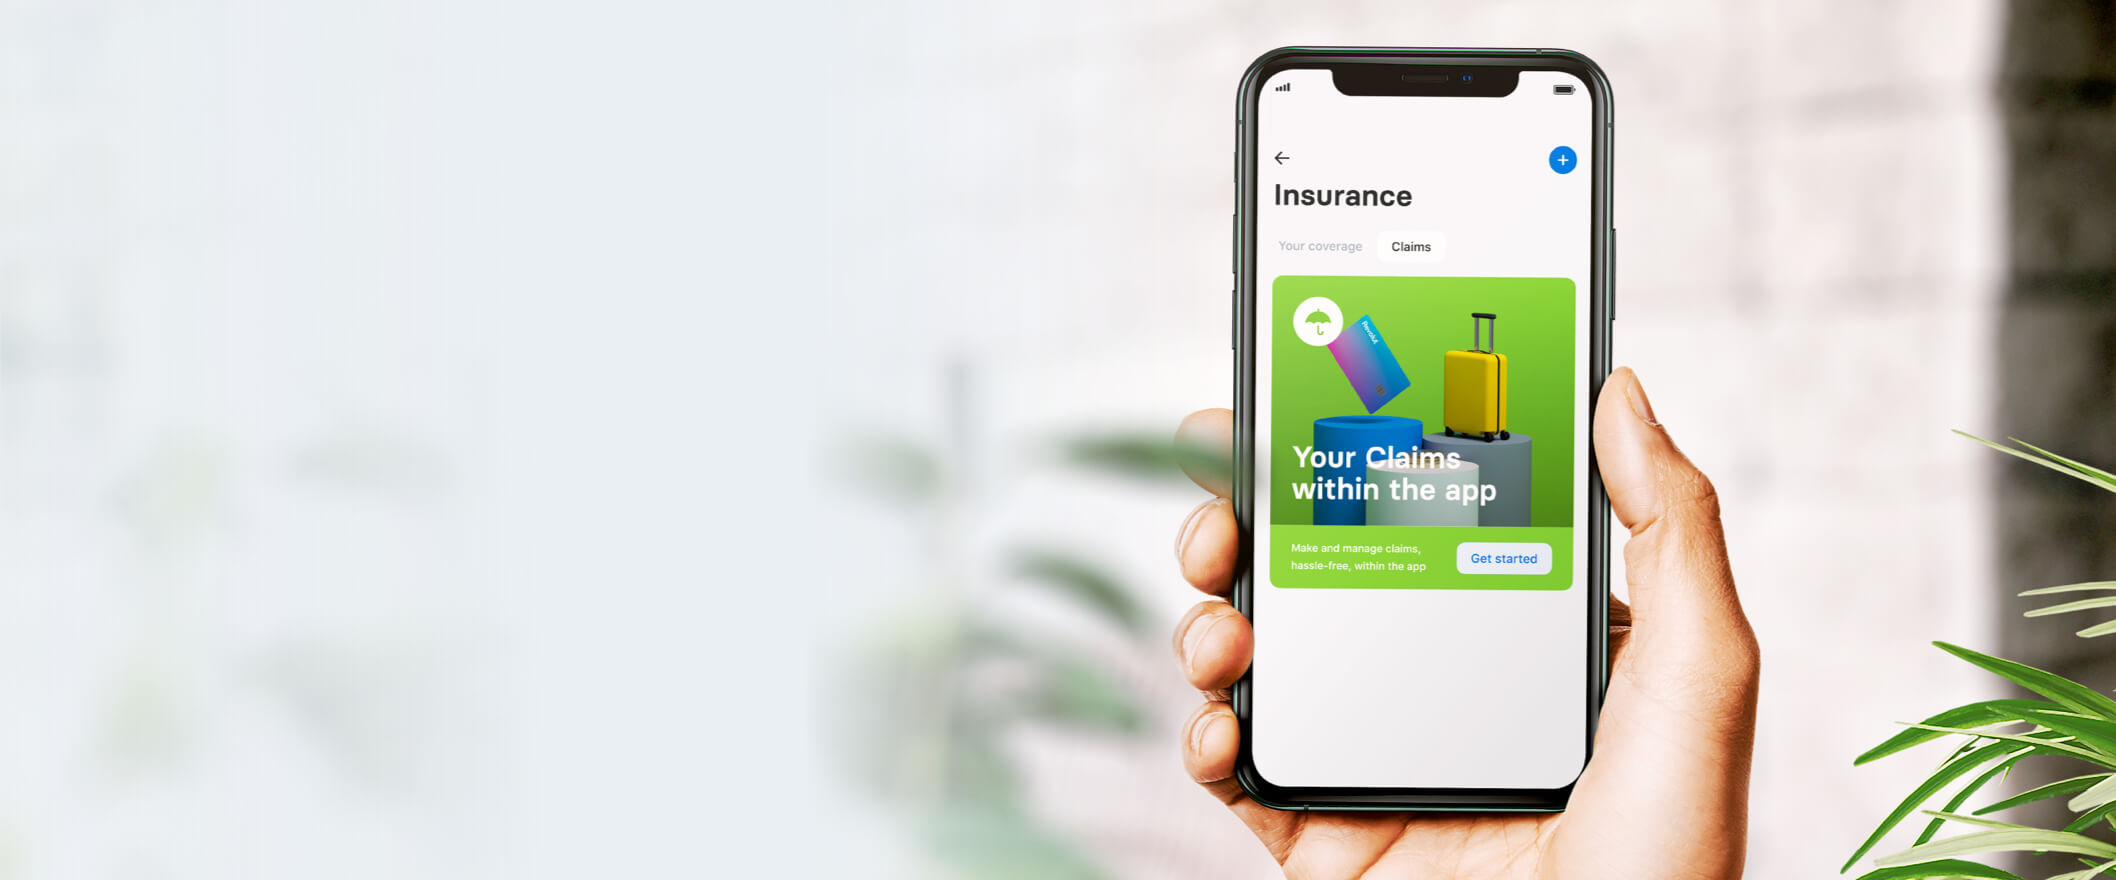 a FinTech user looking at a claim on their digital insurance app